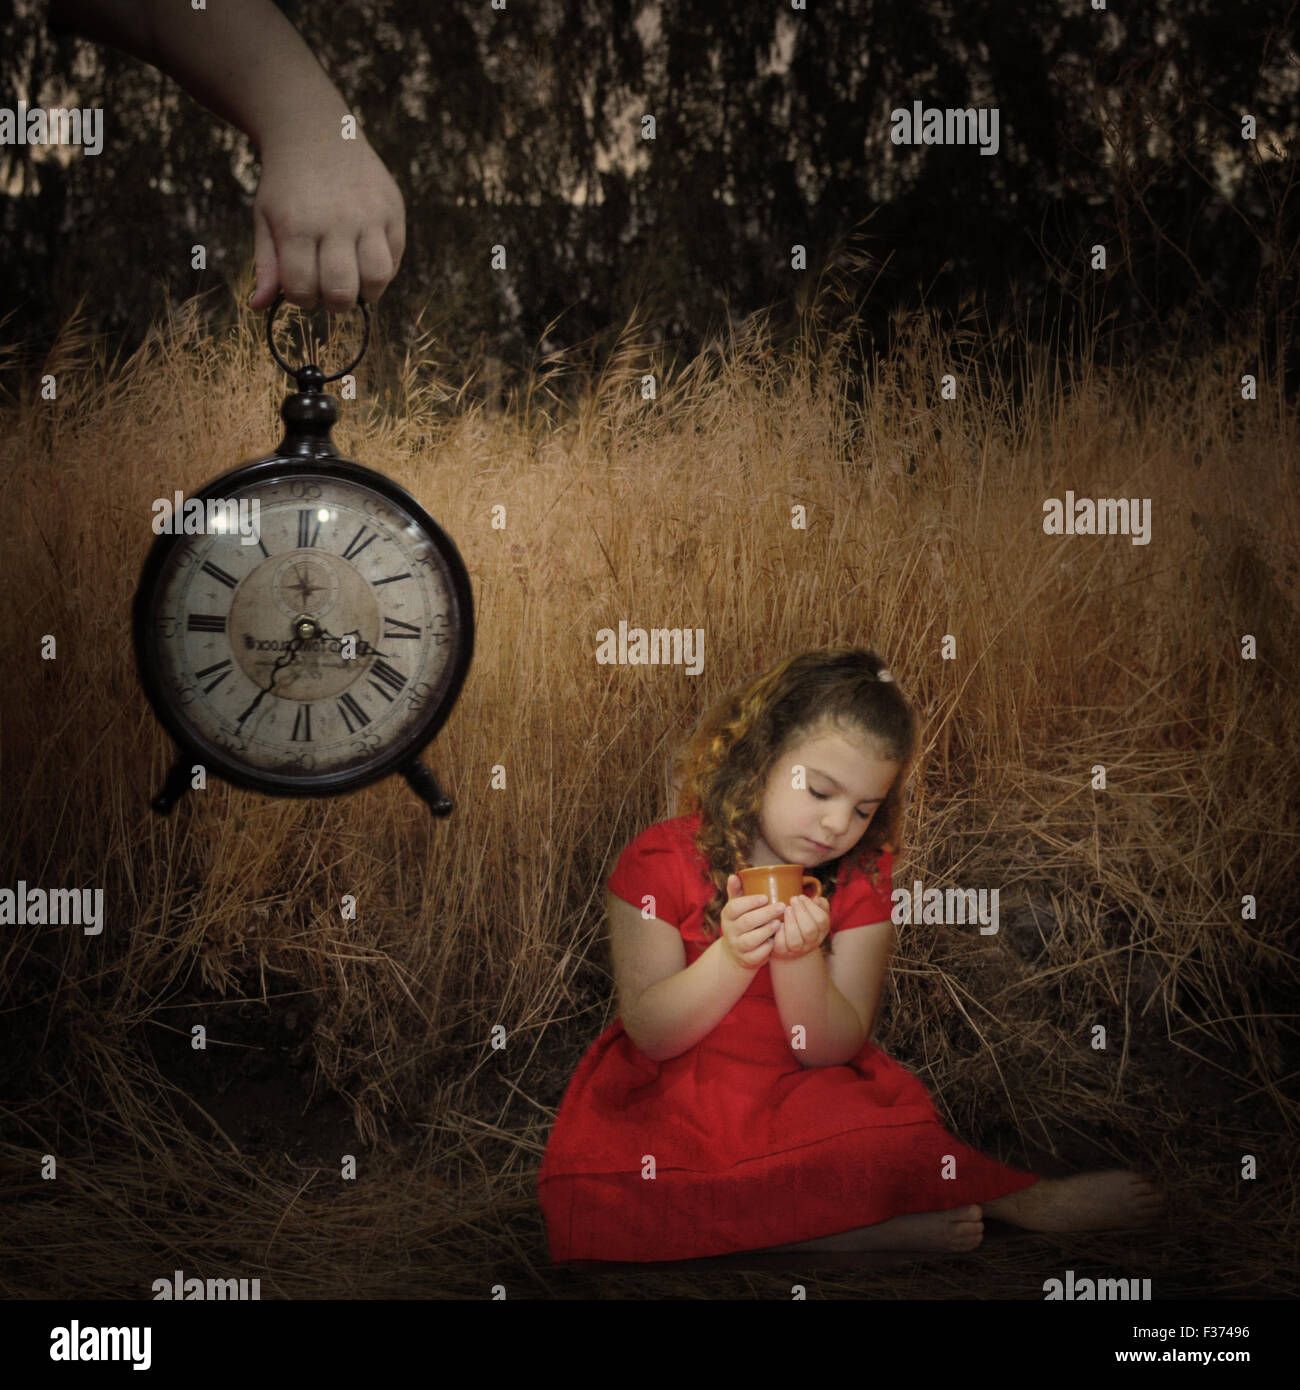 girl in the fields with big hand and a clock surreal - Stock Image